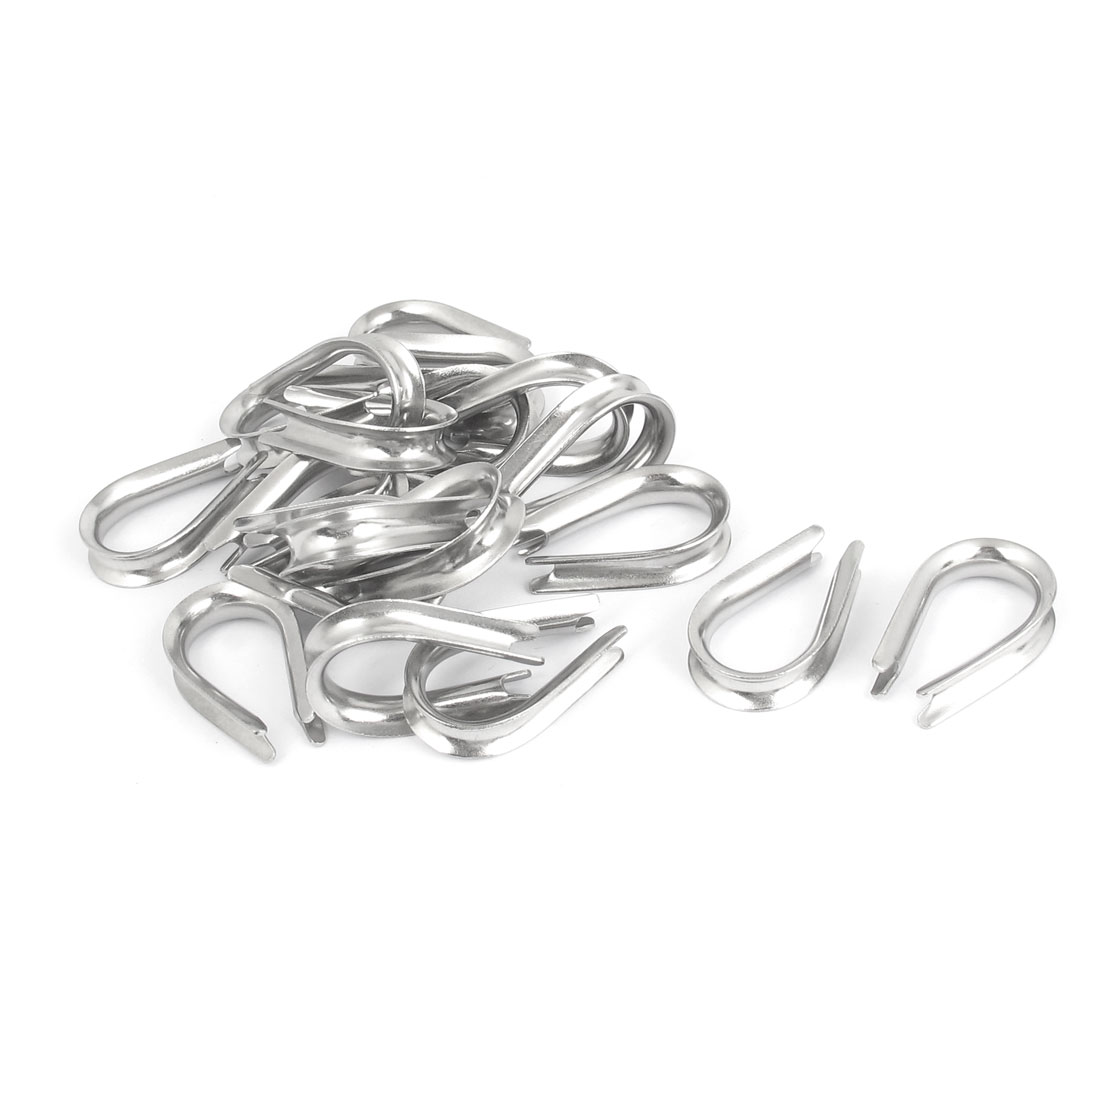 Stainless Steel 6mm Wire Rope Cable Commercial Thimbles Lifting Gear Silver Tone 20pcs